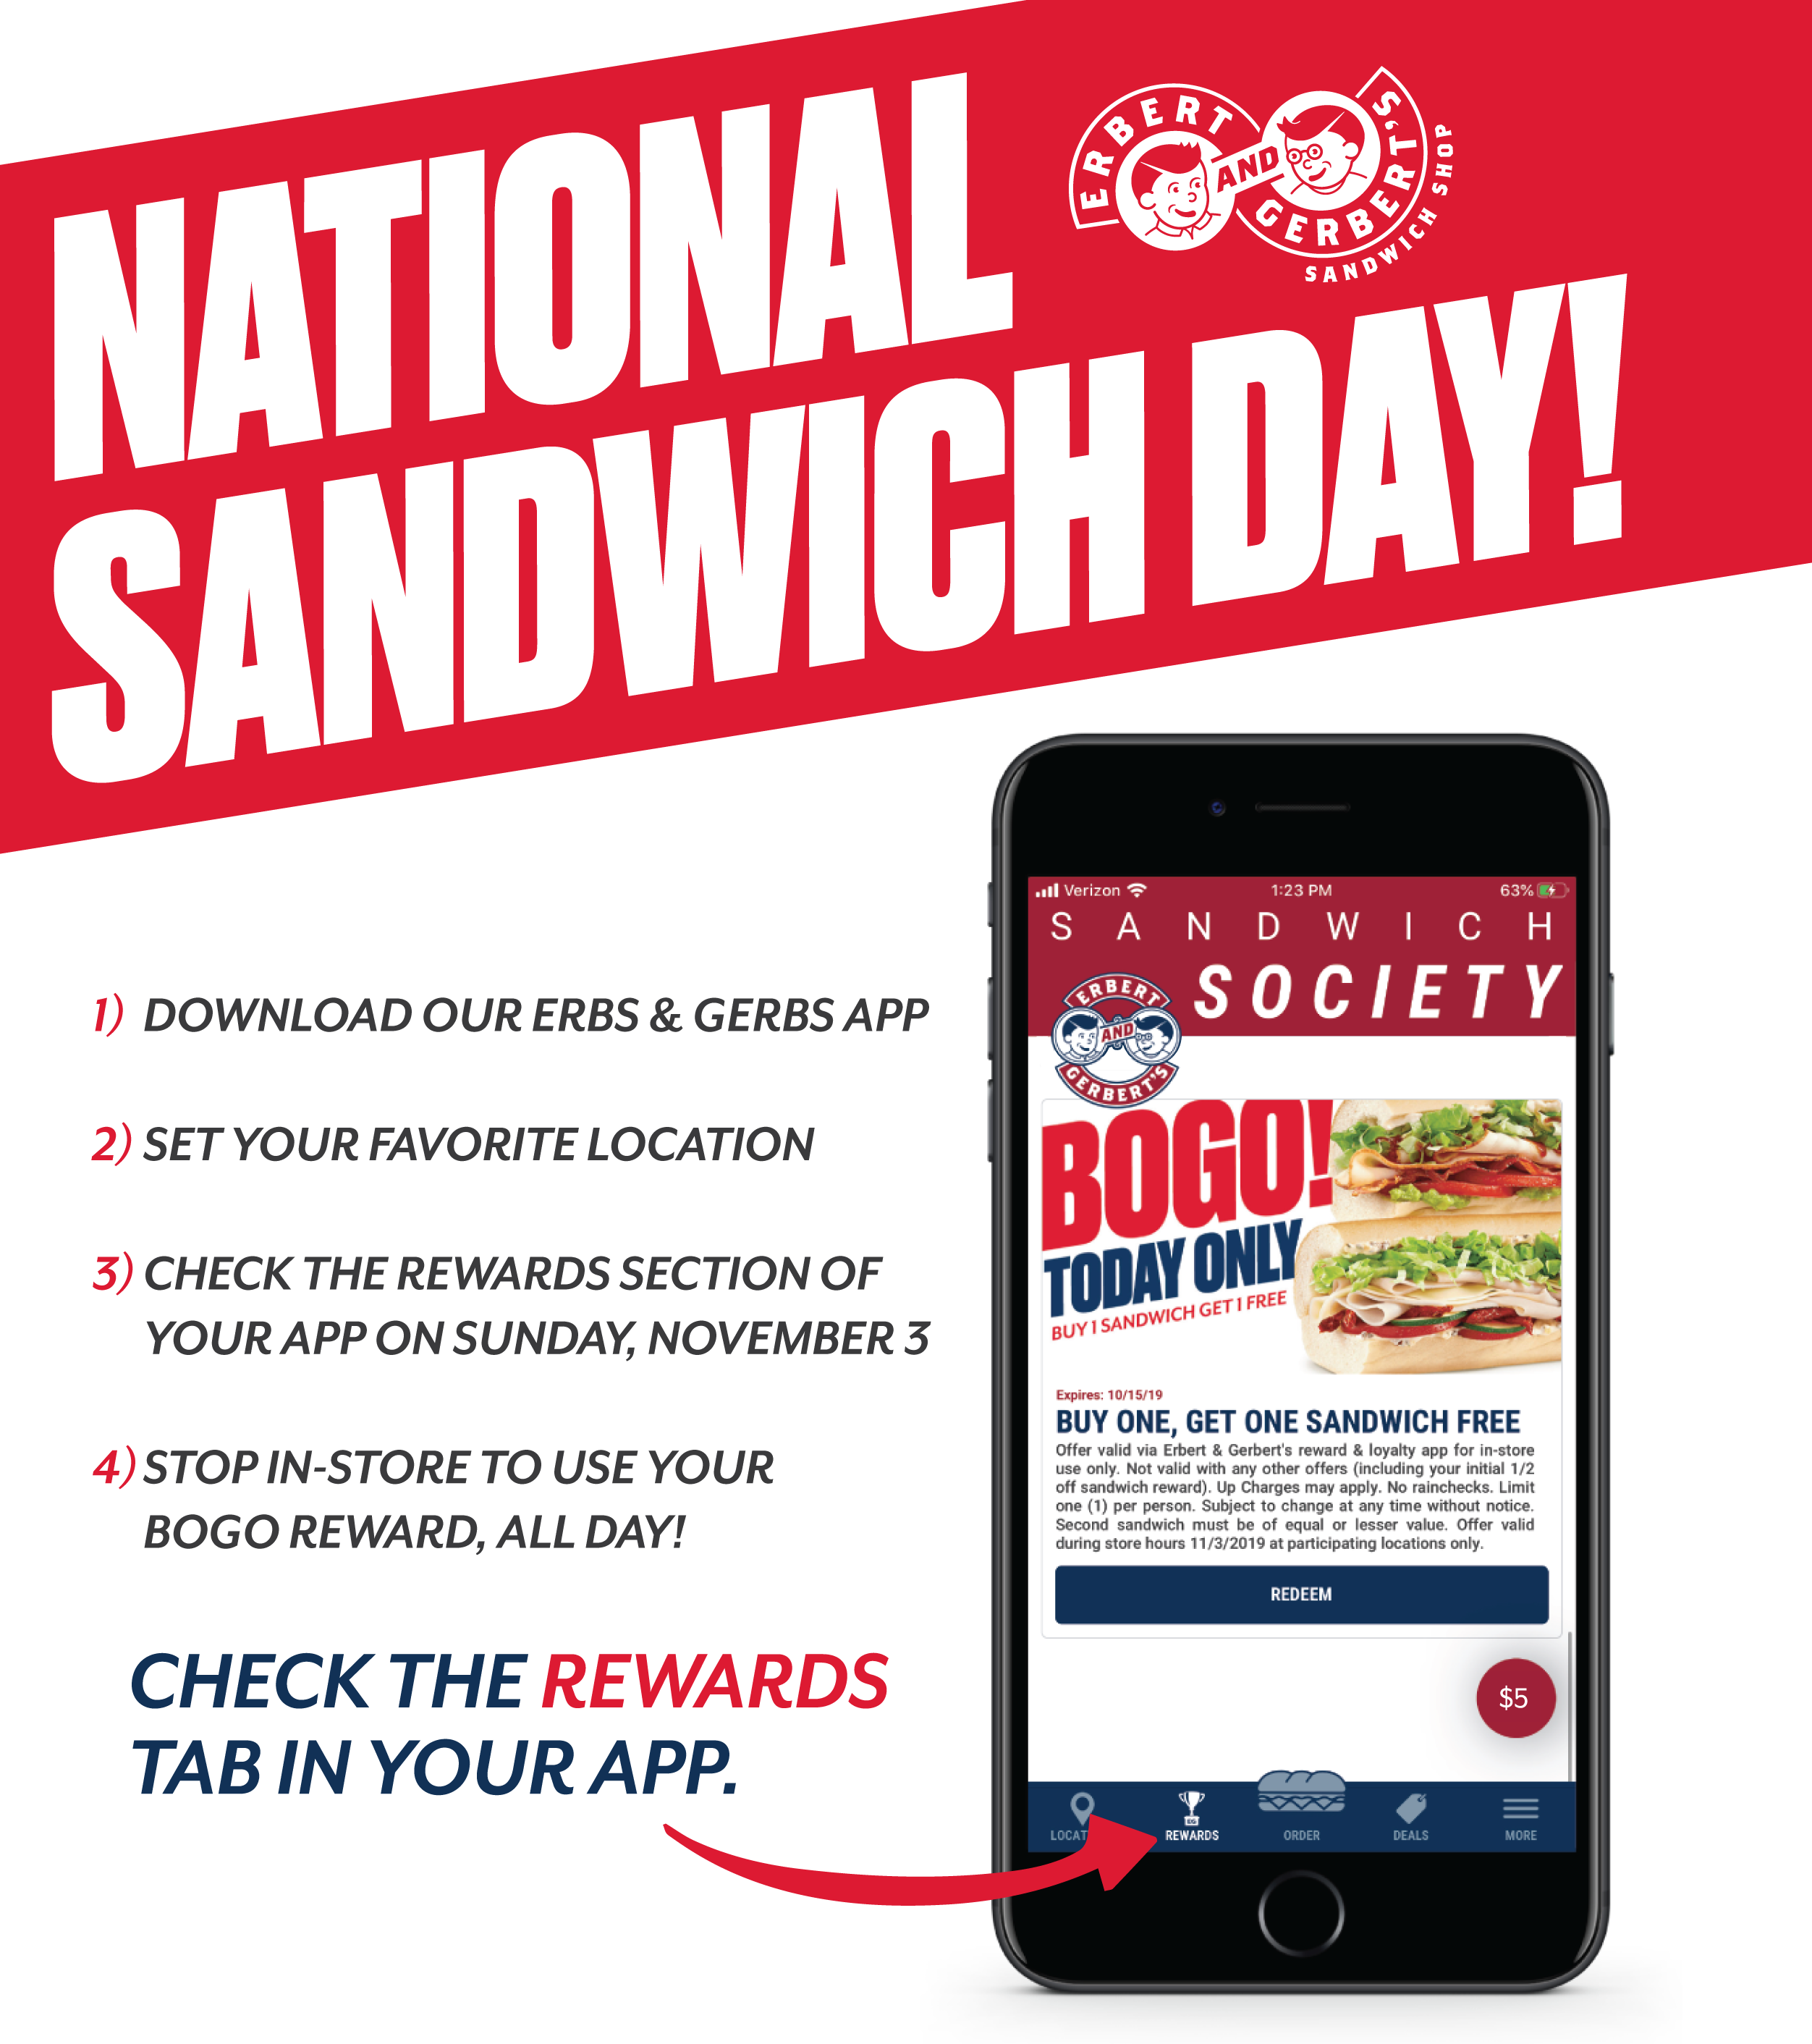 national sandwich day buy one sandwich get one free offer from erbert and gerberts